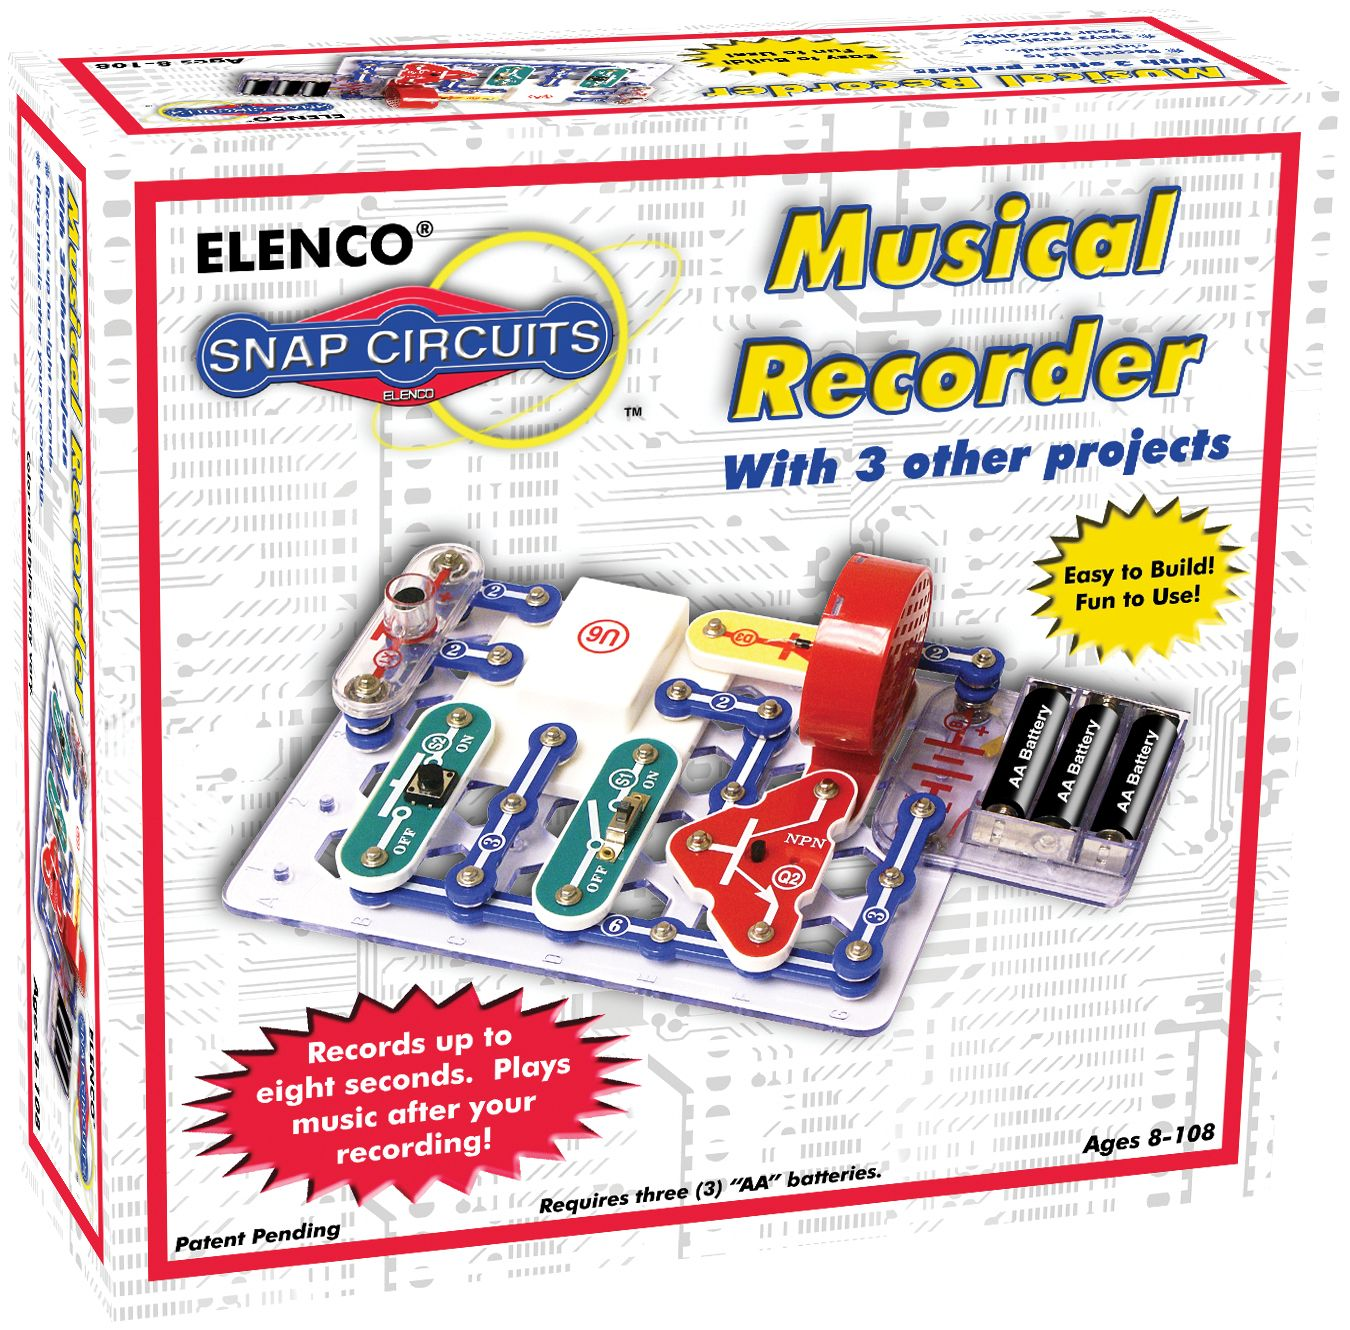 Snap Circuits Musical Recorder By Elenco Circulating Steam Kits Flying Saucer Easy To Build Provides Hours Of Fun